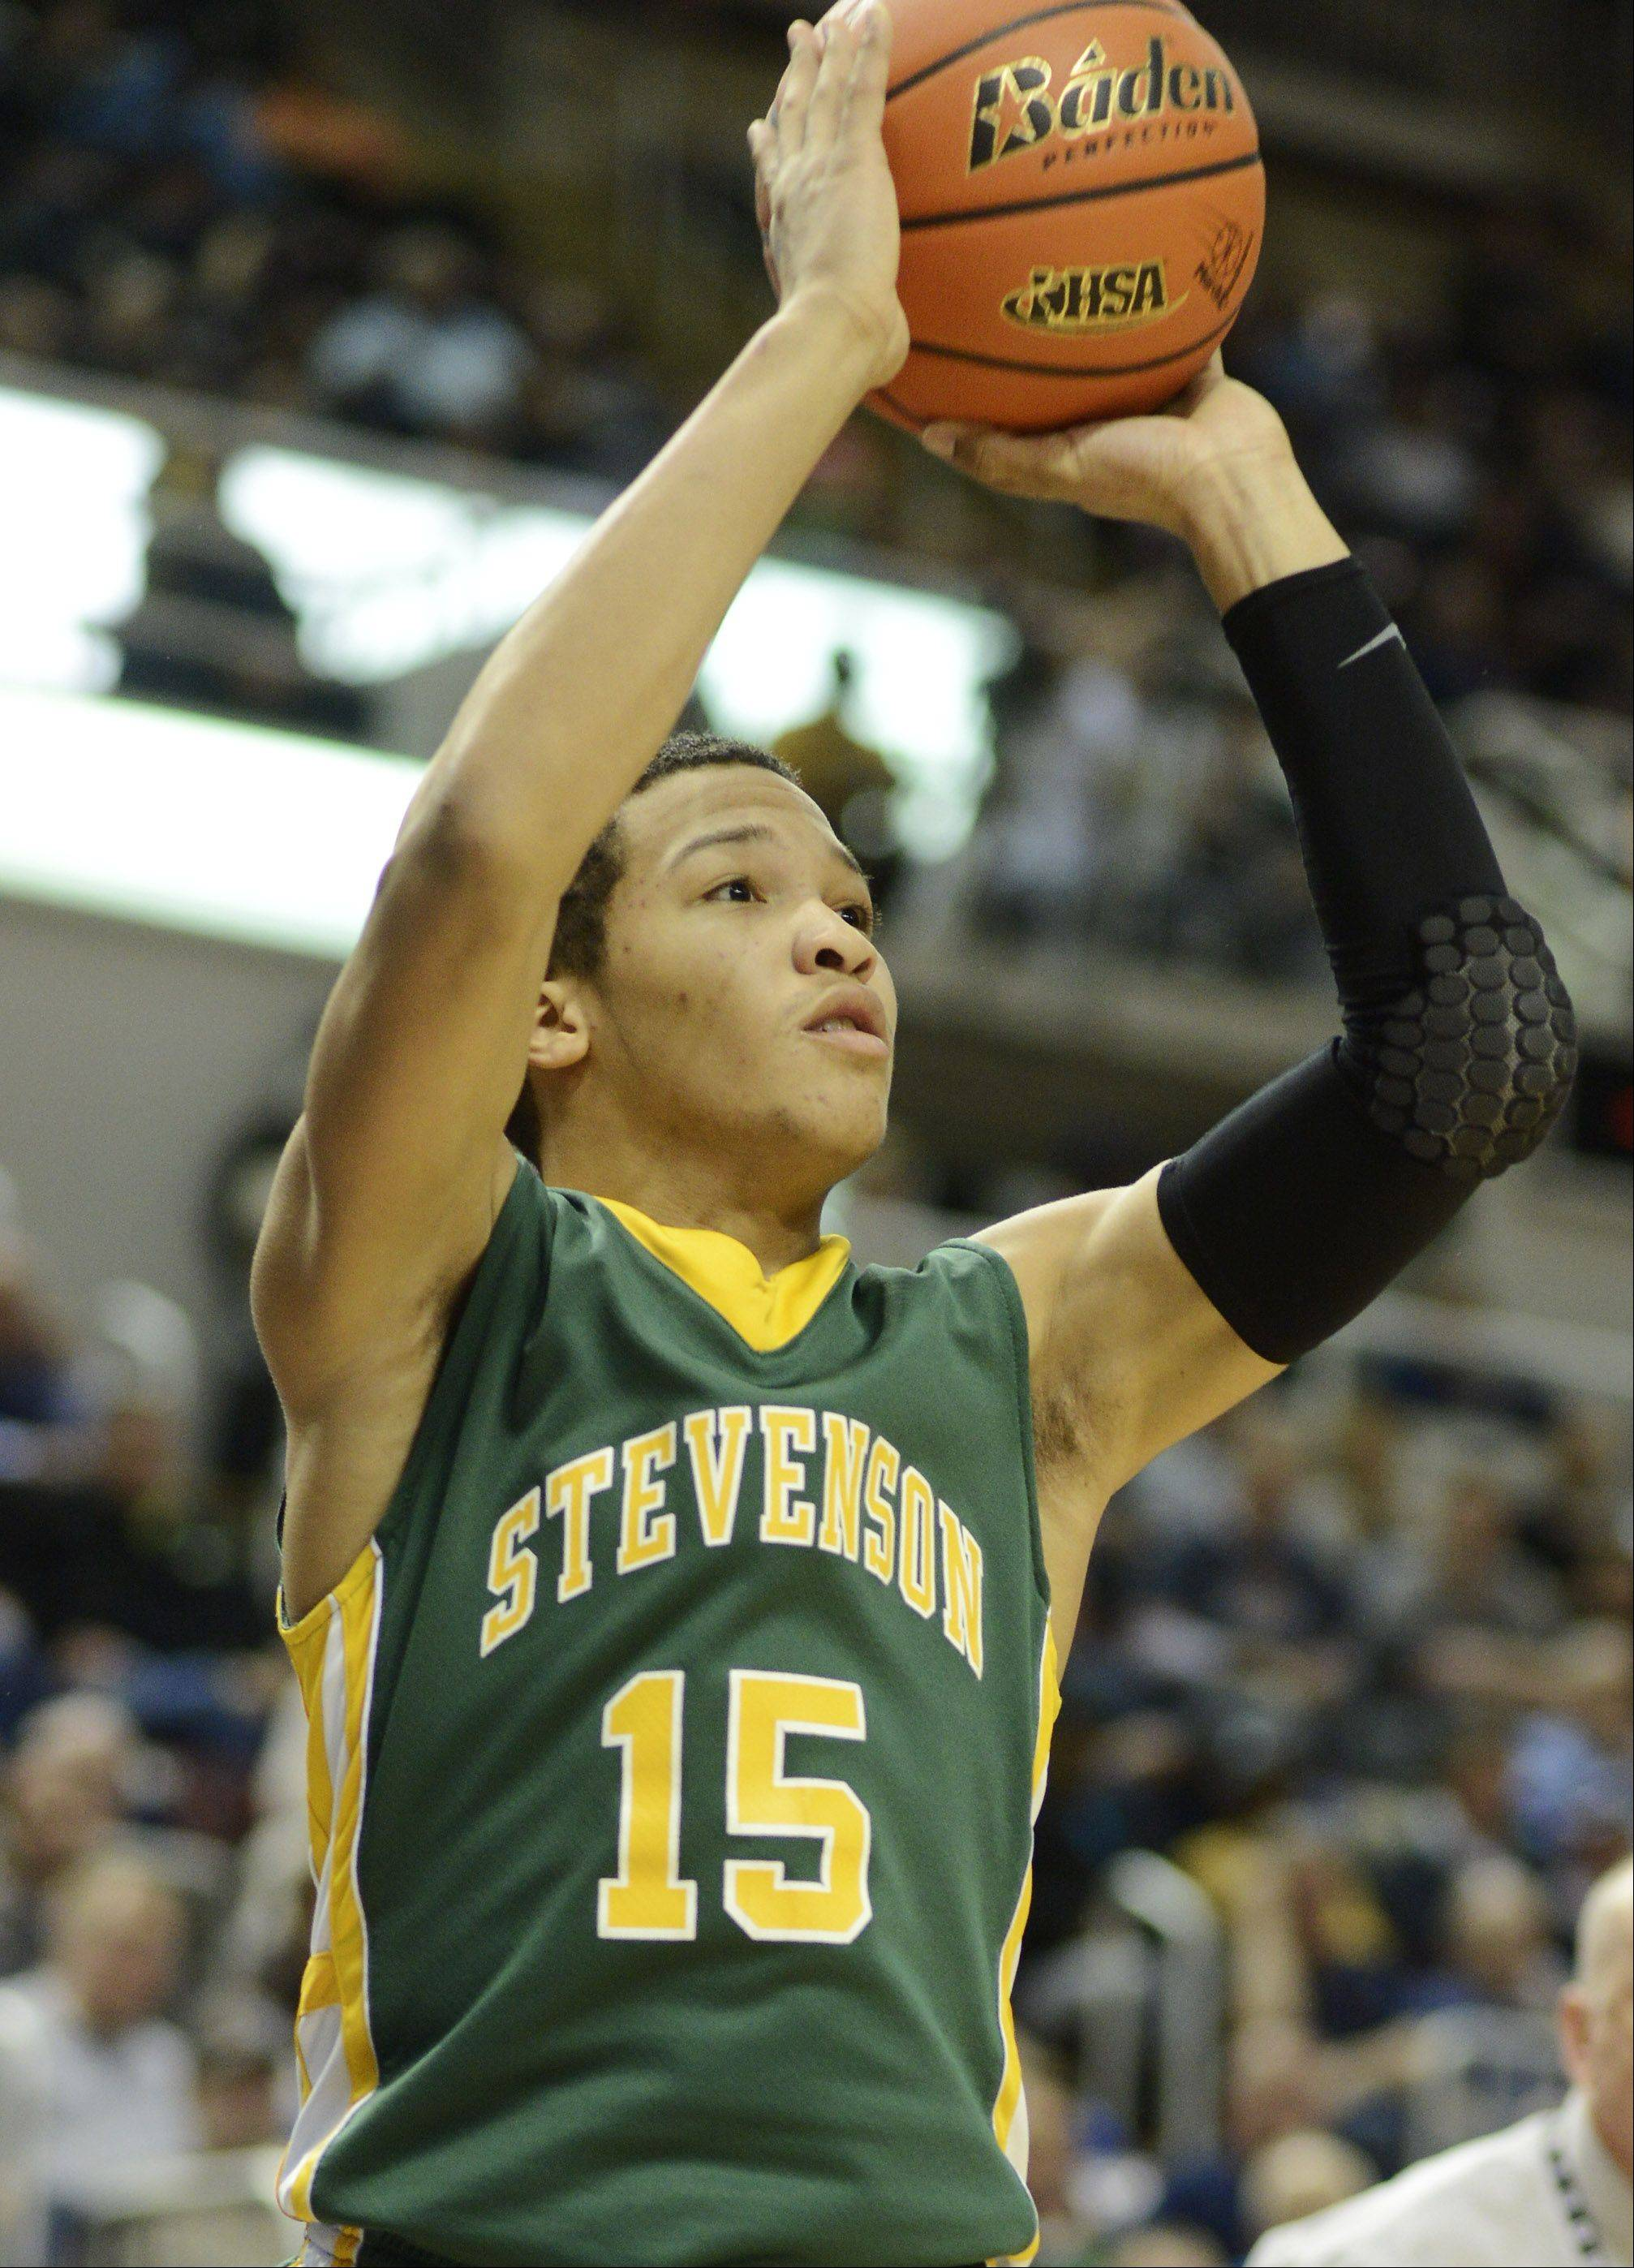 Stevenson's Jalen Brunson hits a shot from the corner during the Class 4A boys basketball state semifinals at Carver Arena in Peoria on Friday.